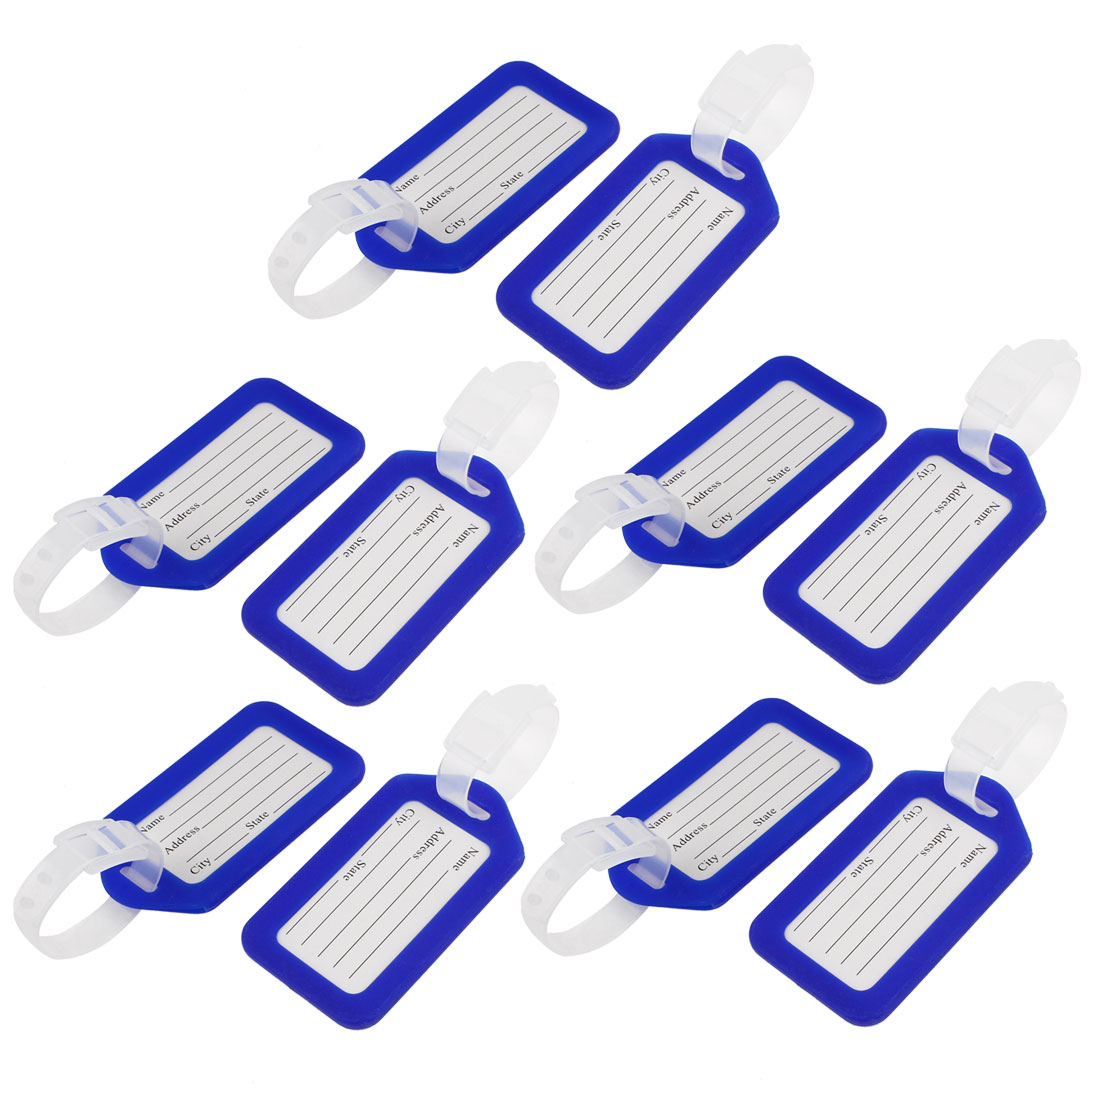 10 Pcs Blue White Hard Plastic Suitcase Bag ID Name Label Travel Luggage Tags